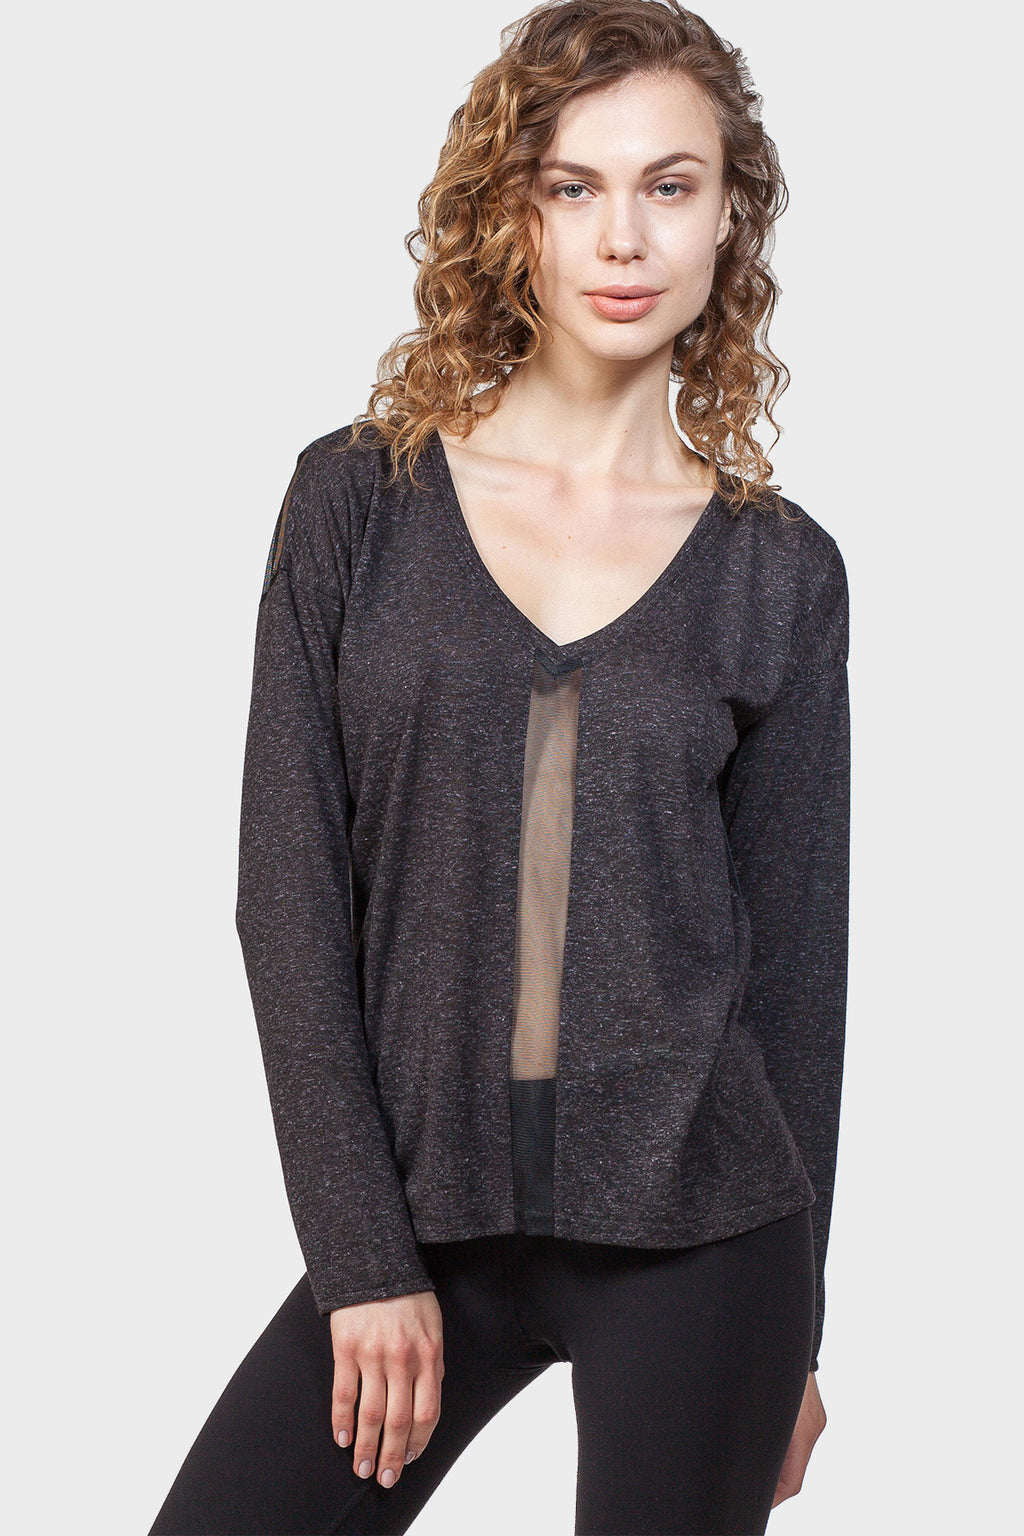 MESH PANEL SWEATSHIRT - 337 BRAND Women's Sustainable Clothing